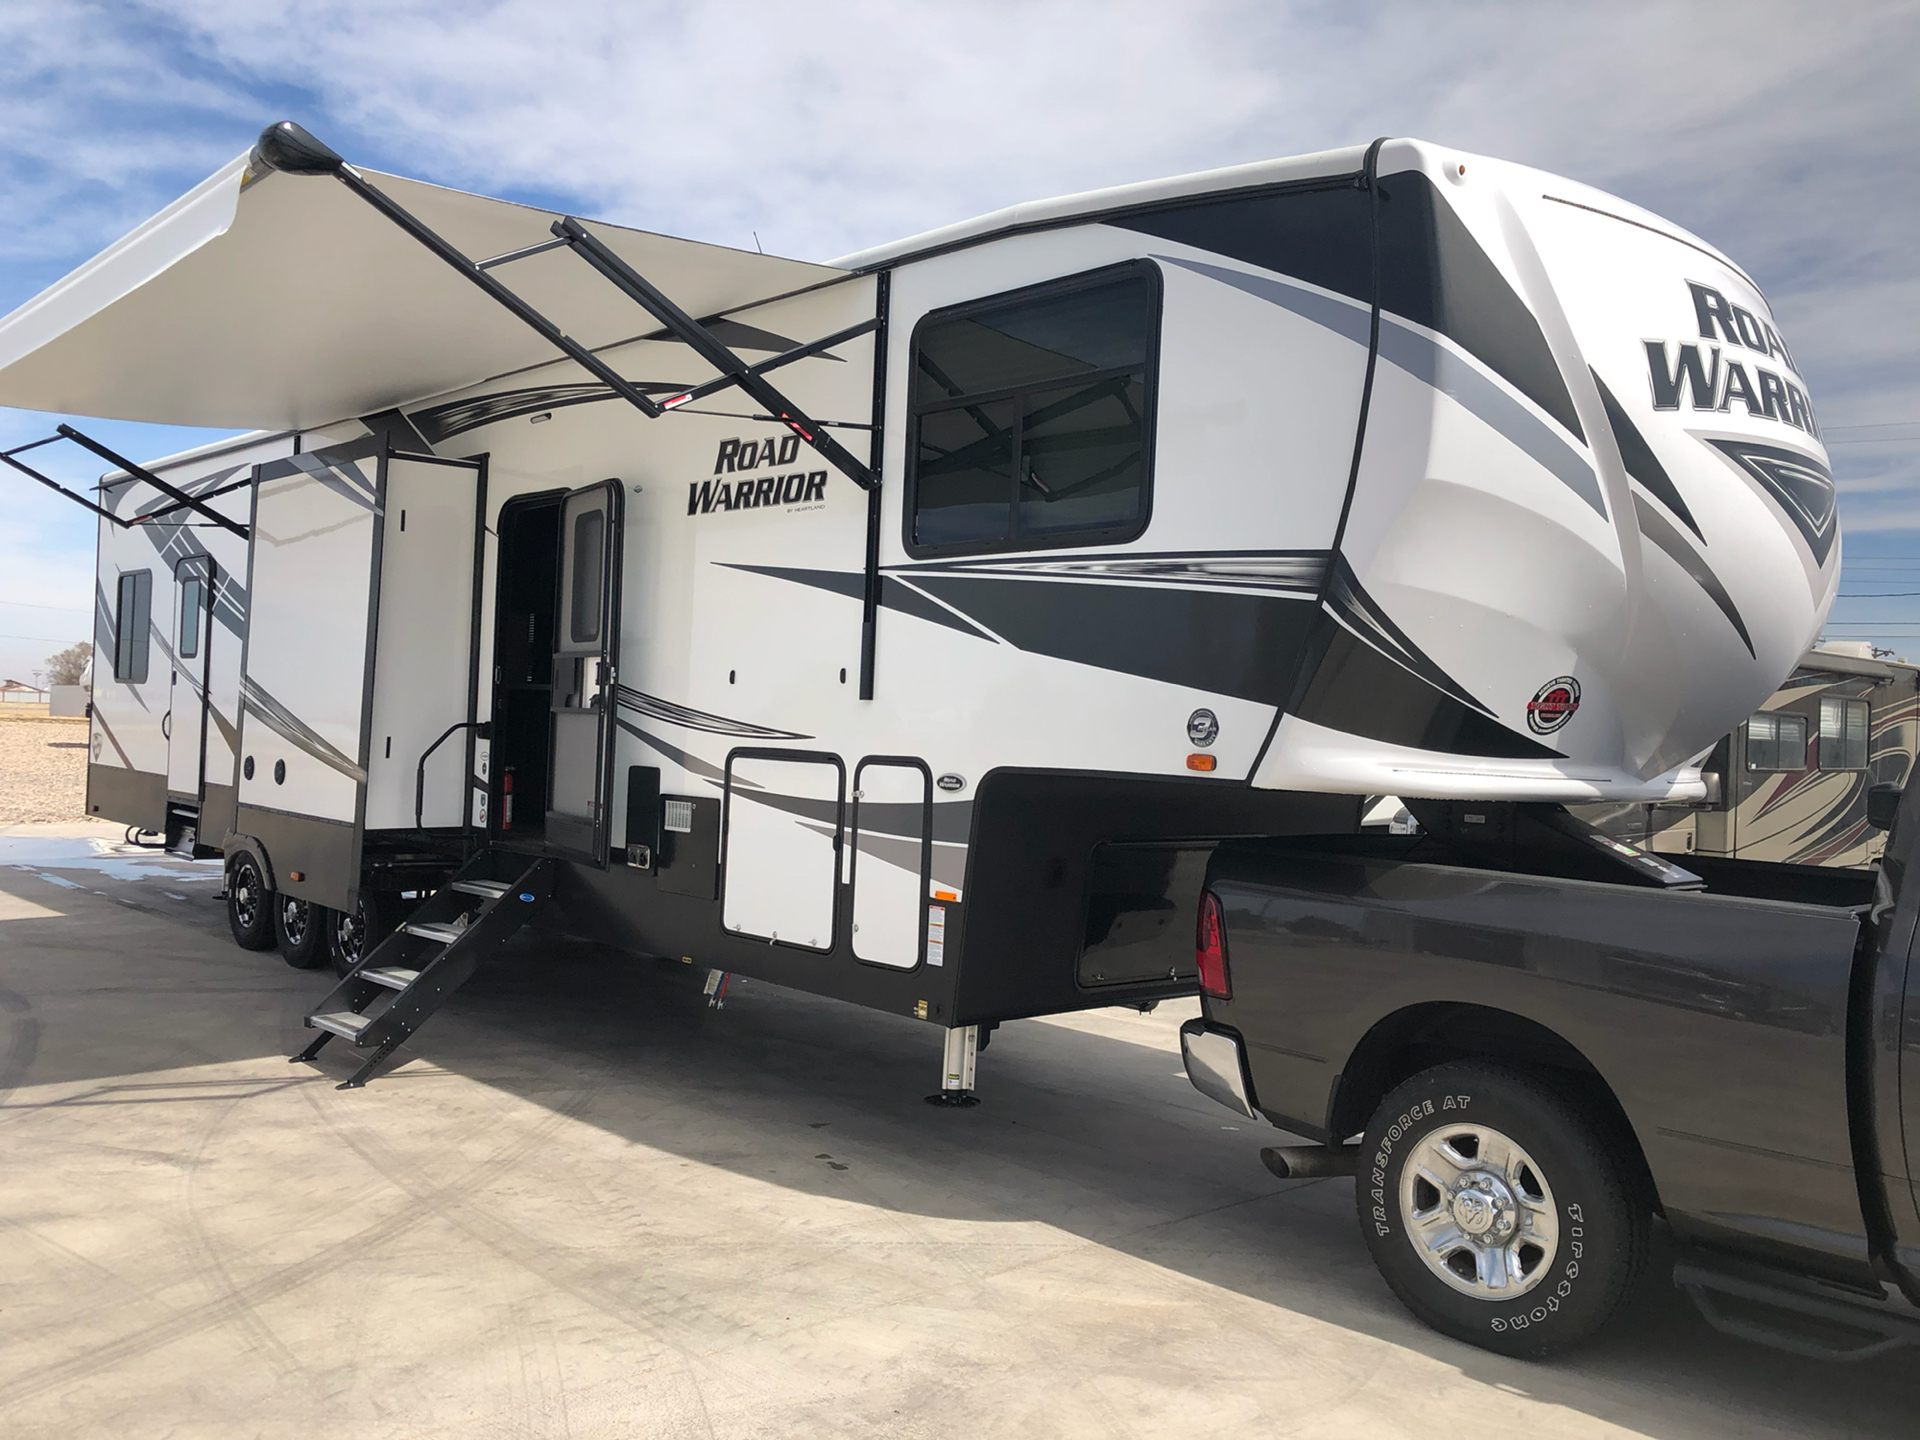 2019 Heartland Rvs RW 413 in Wolfforth, Texas - Photo 2